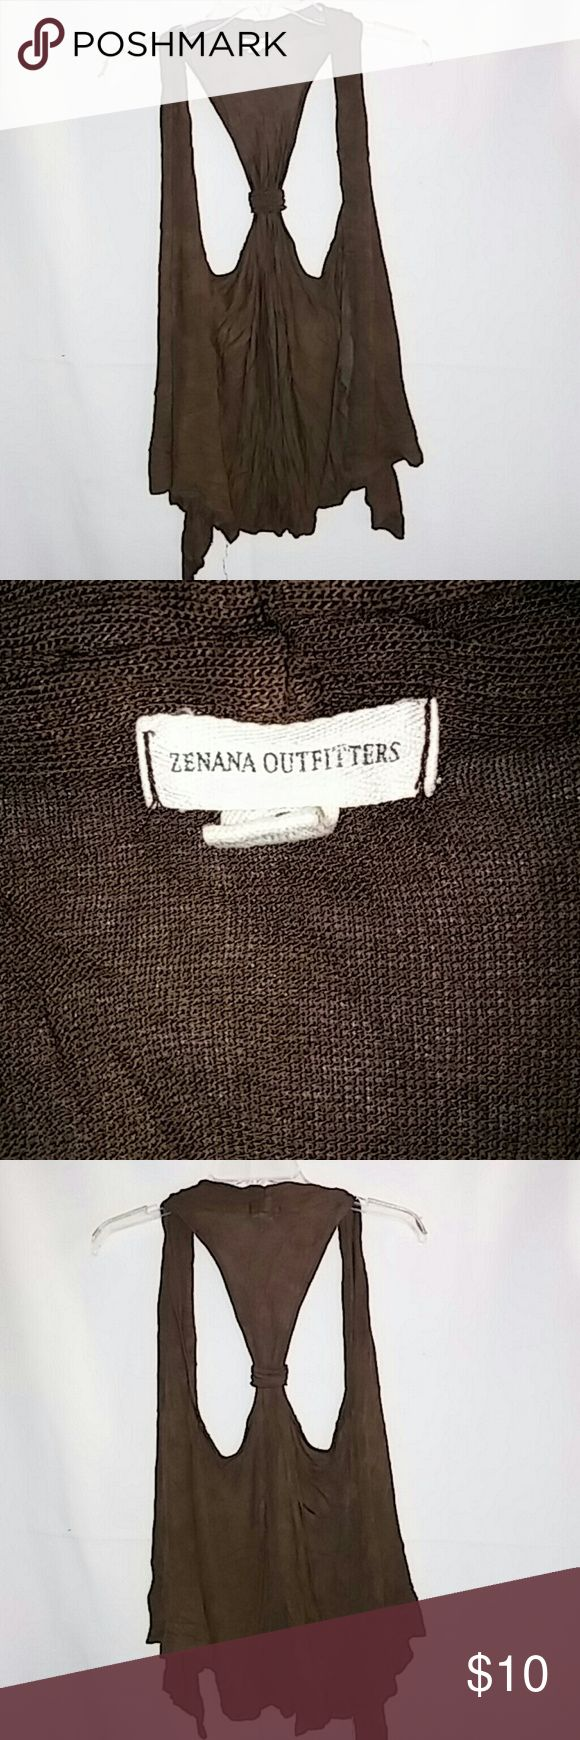 Casual sleeveless Zenana Outfitters cardigan Comfortable brown sleeveless cardigan in great condition Zenana Outfitters Sweaters Cardigans